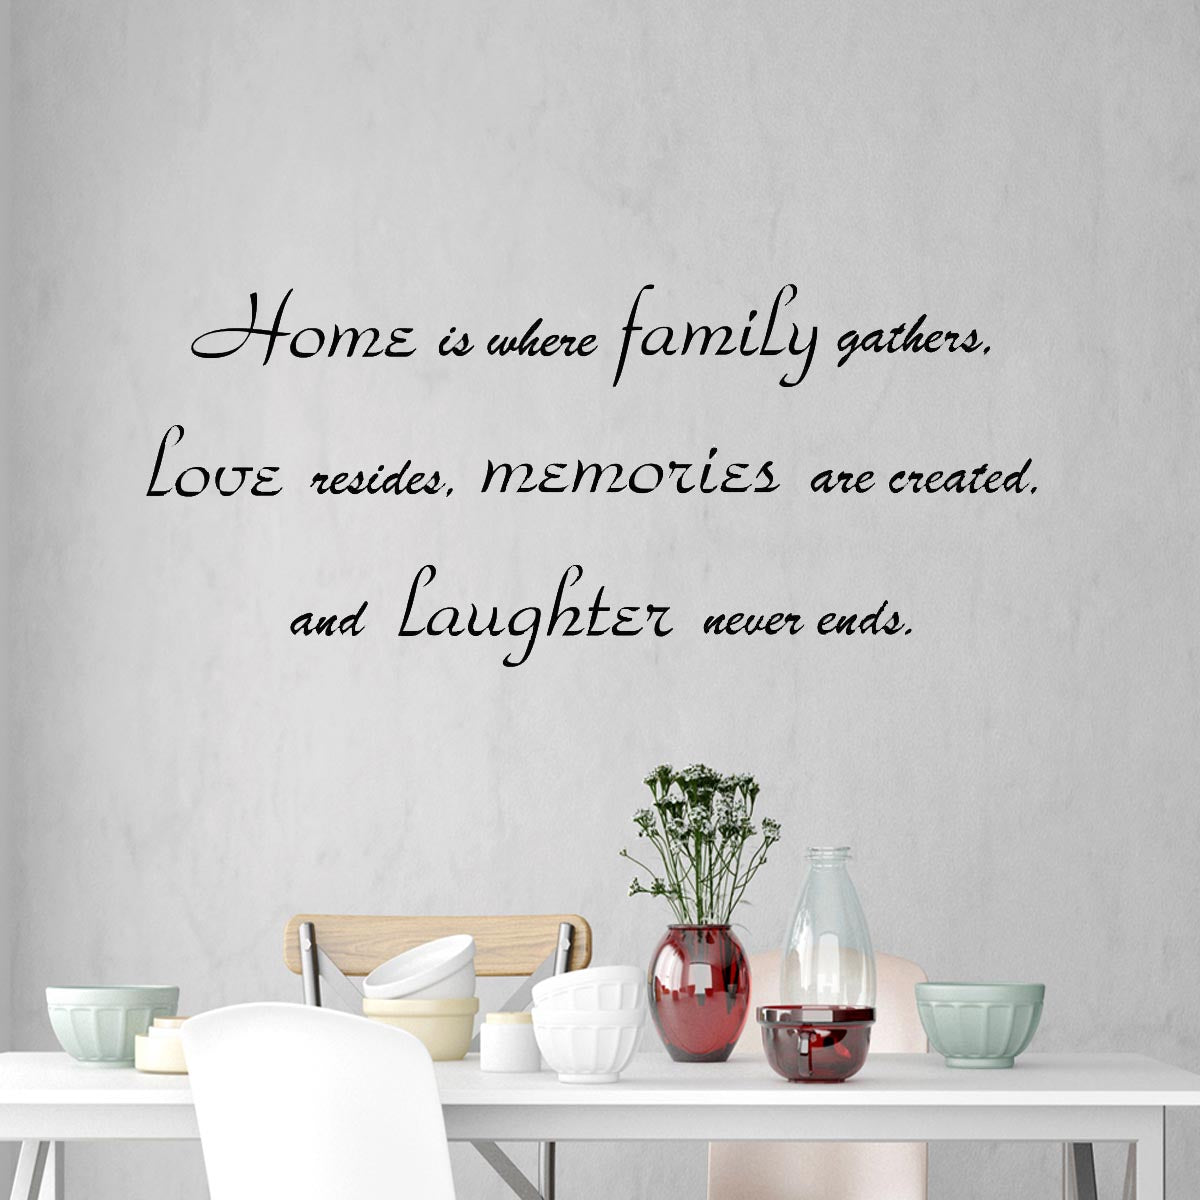 home is where family gathers wall decal family room wall quote sa